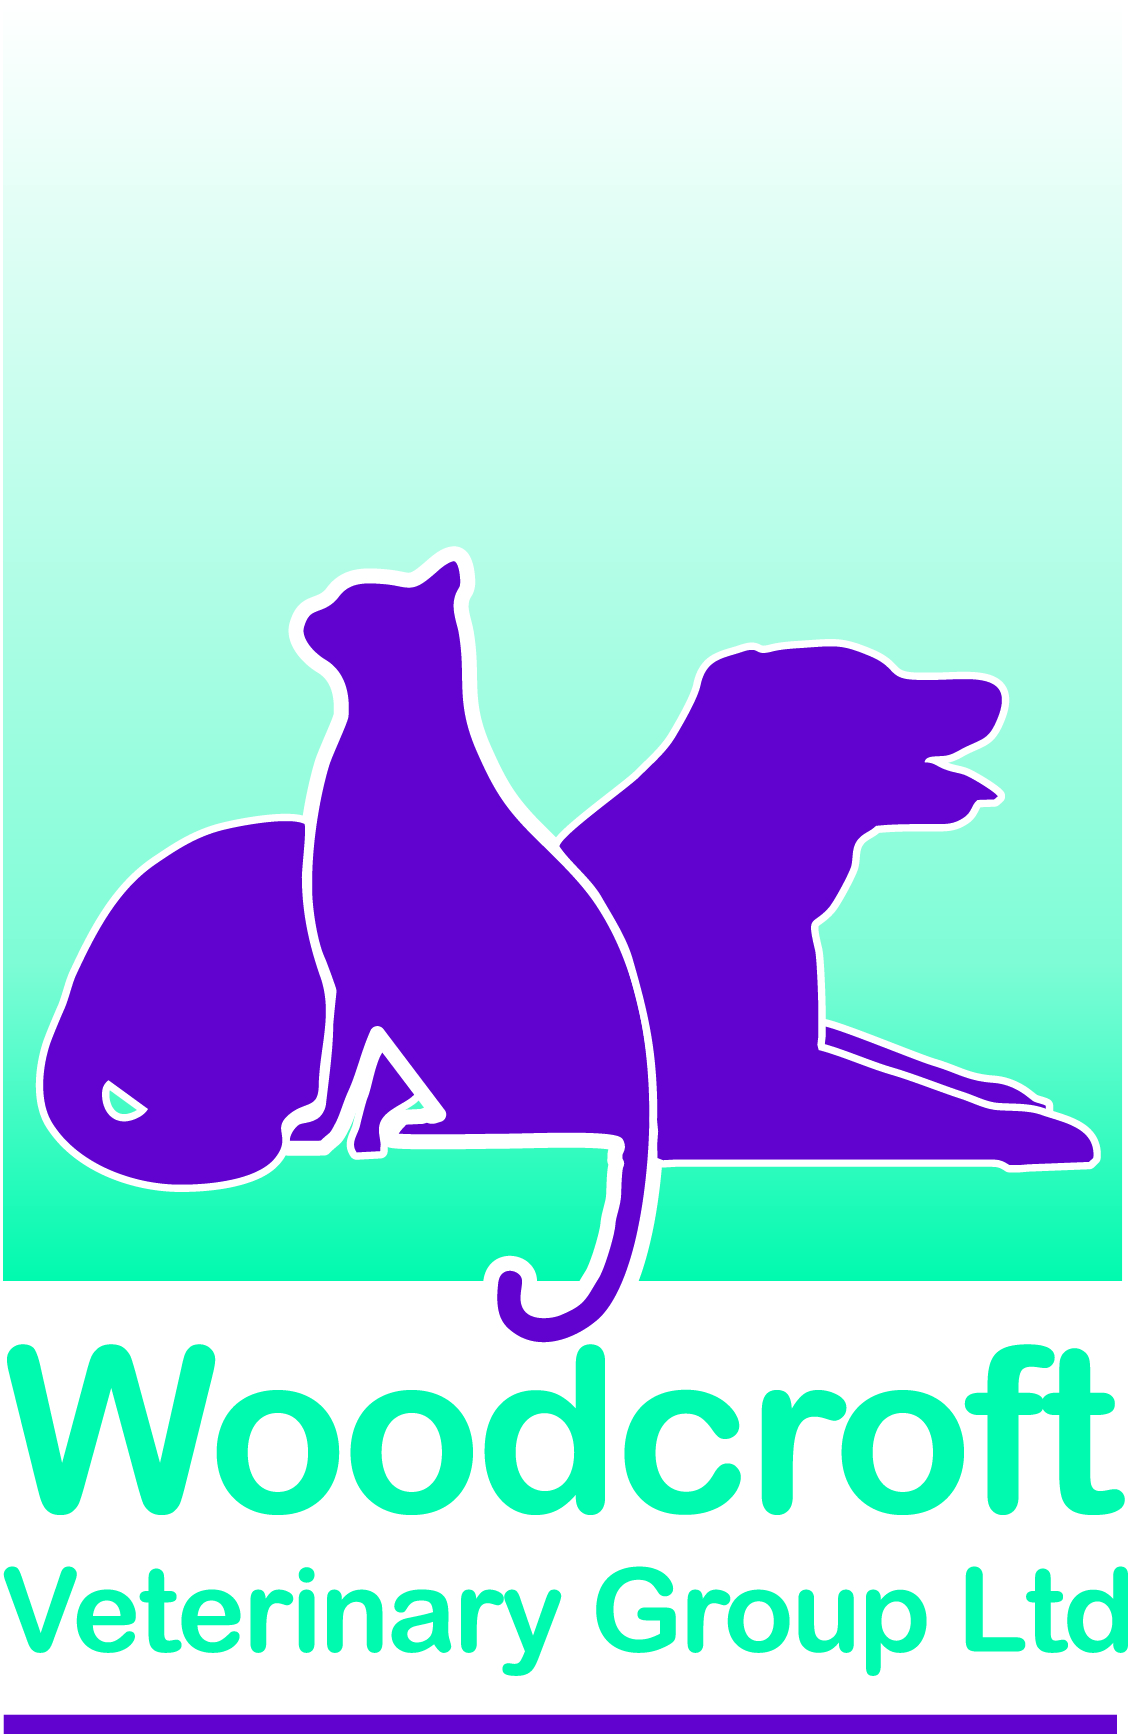 Woodcroft Veterinary Group - Offerton